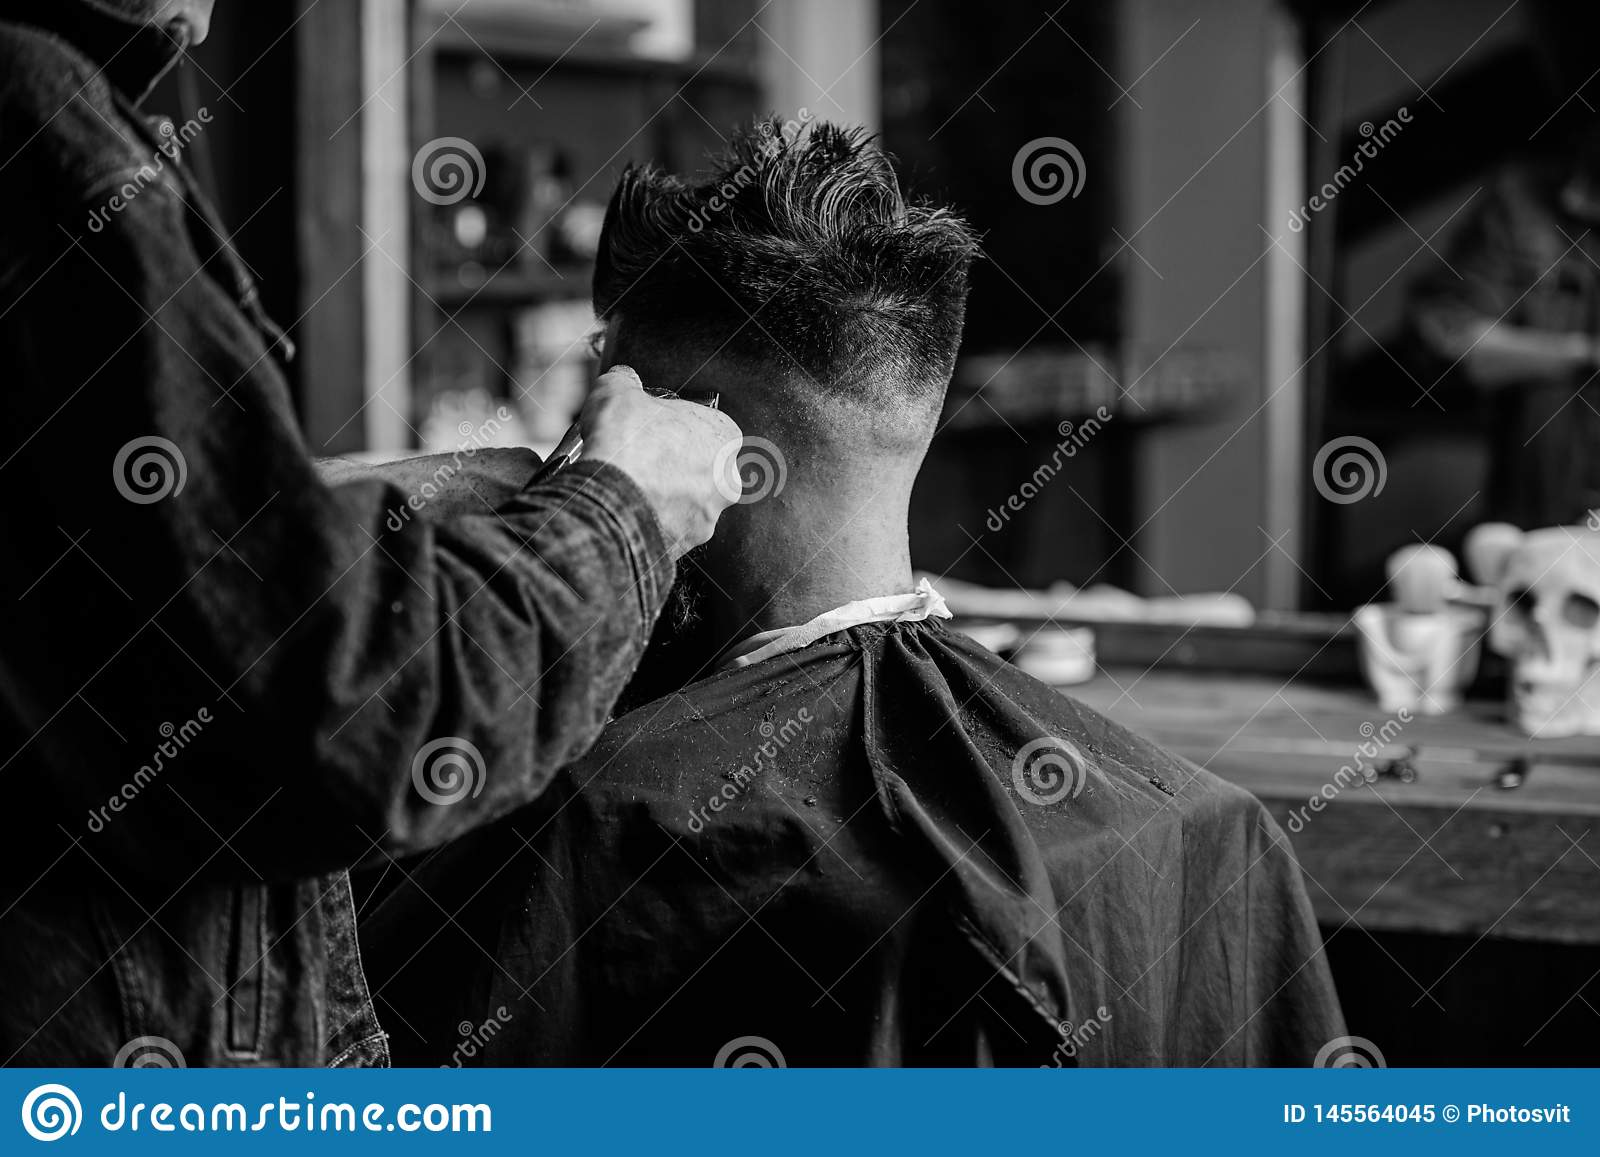 Hands of barber trimming hair of bearded guy with clipper and comb, close up rear view. Barbershop concept. Man with